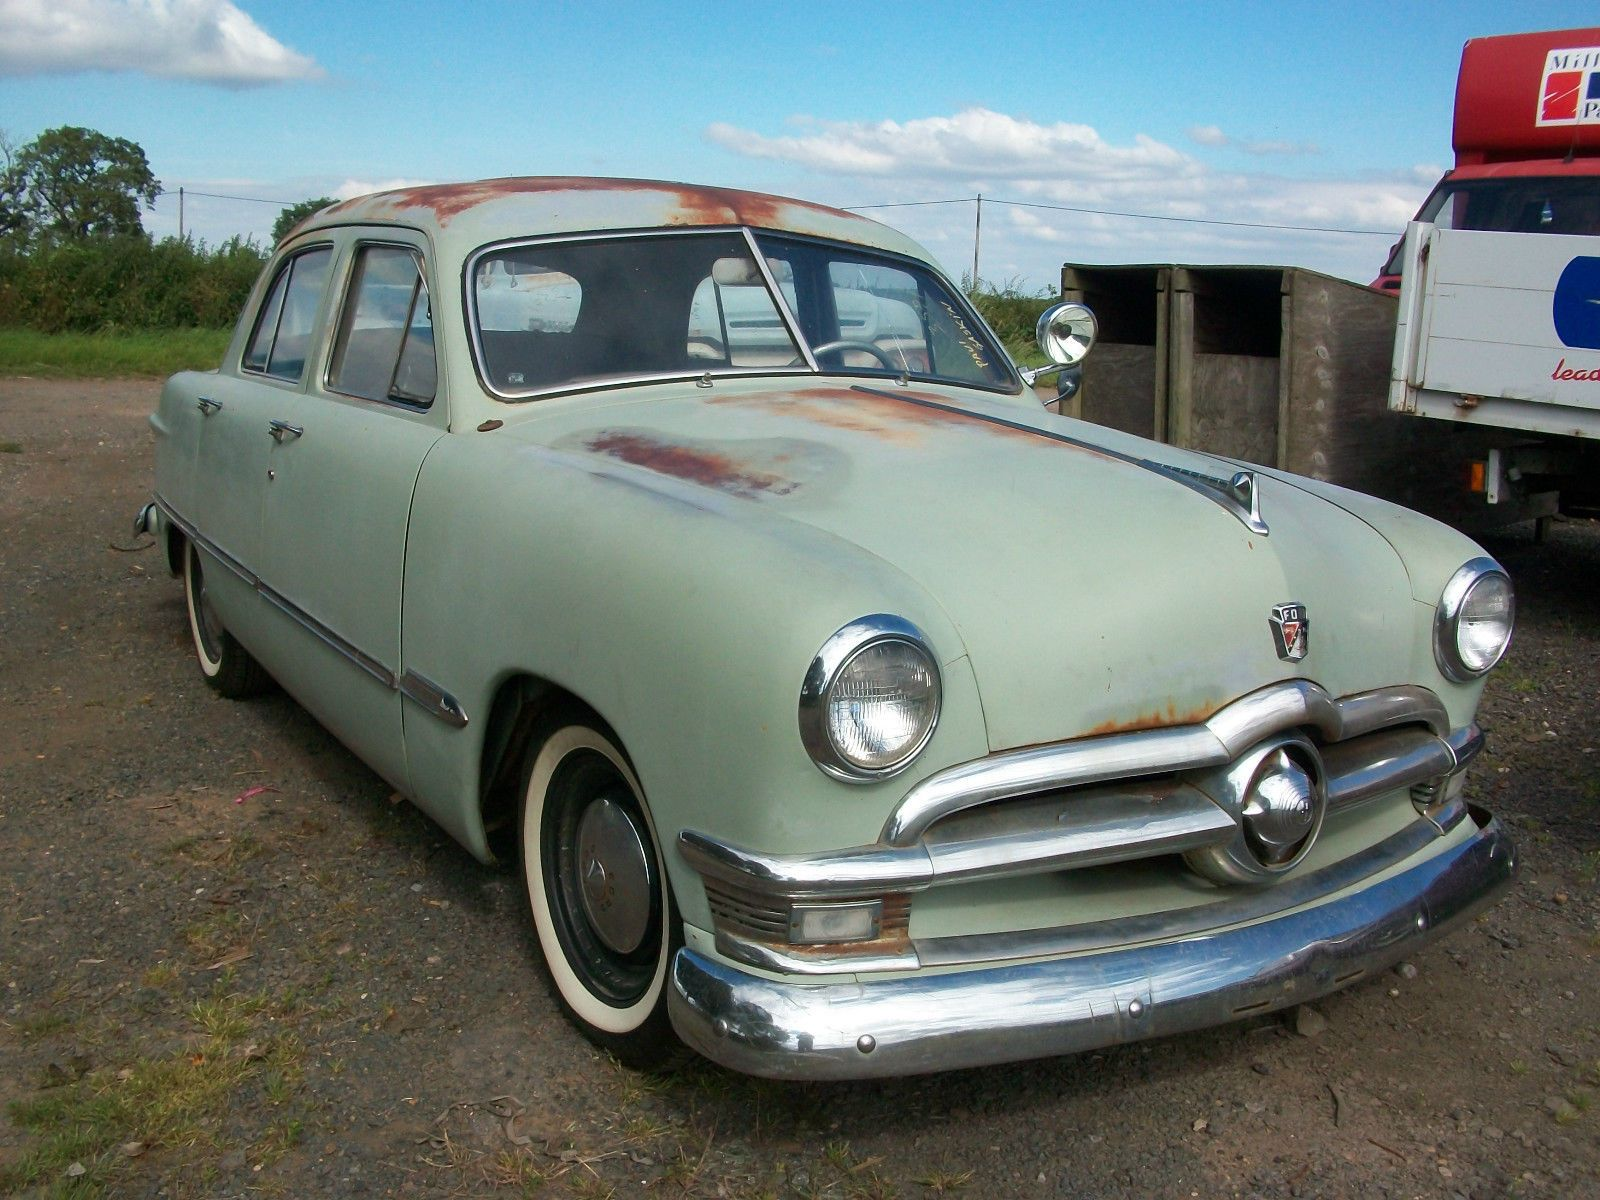 1950 ford shoebox sedan flathead v8 original patina classic american